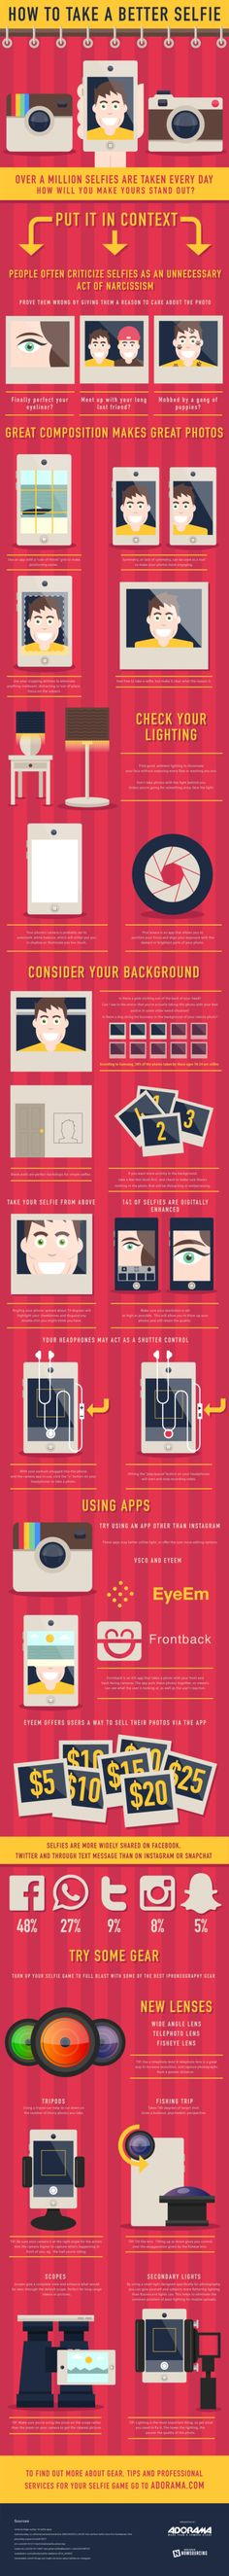 How To Take A Better Selfie --shared by NowSourcing on Aug 07, 2014 - See more at: http://visual.ly/how-take-better-selfie#sthash.X7vrG3xj.dpuf